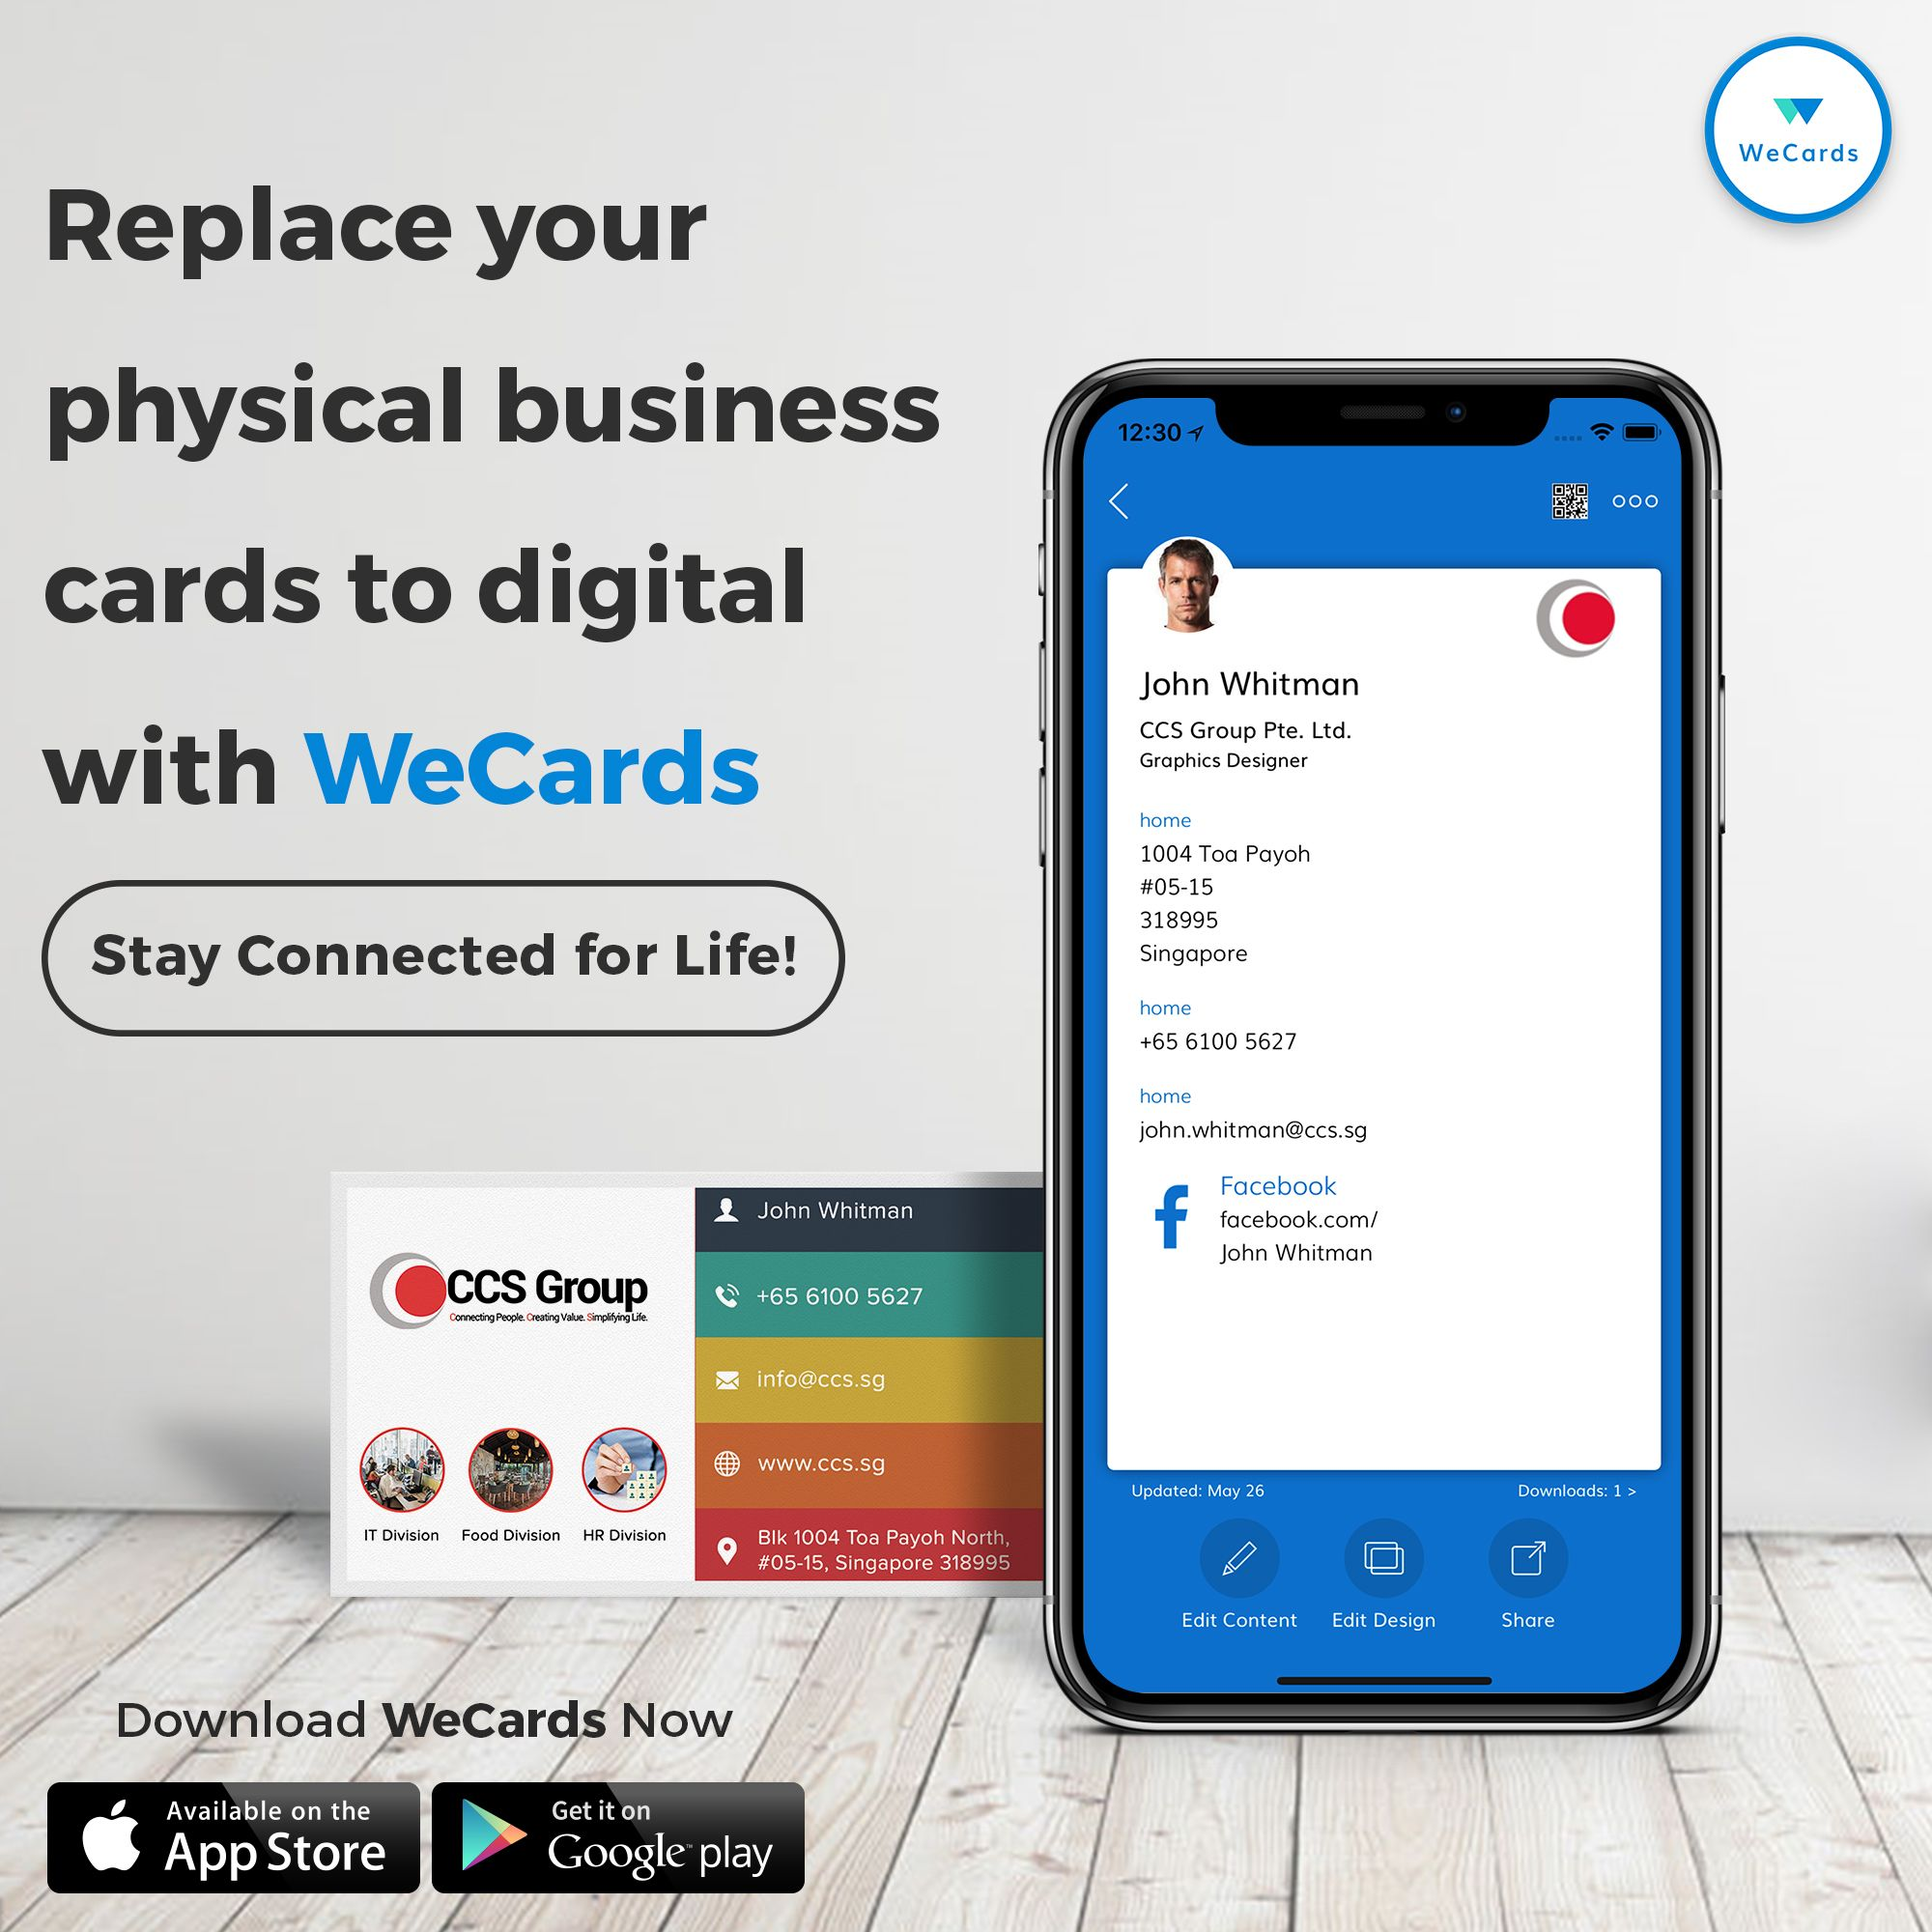 Download The Wecards App Ios Or Android And Create Your New Digital Card By Entering Your Cont Digital Business Card Business Cards Online Business Card App